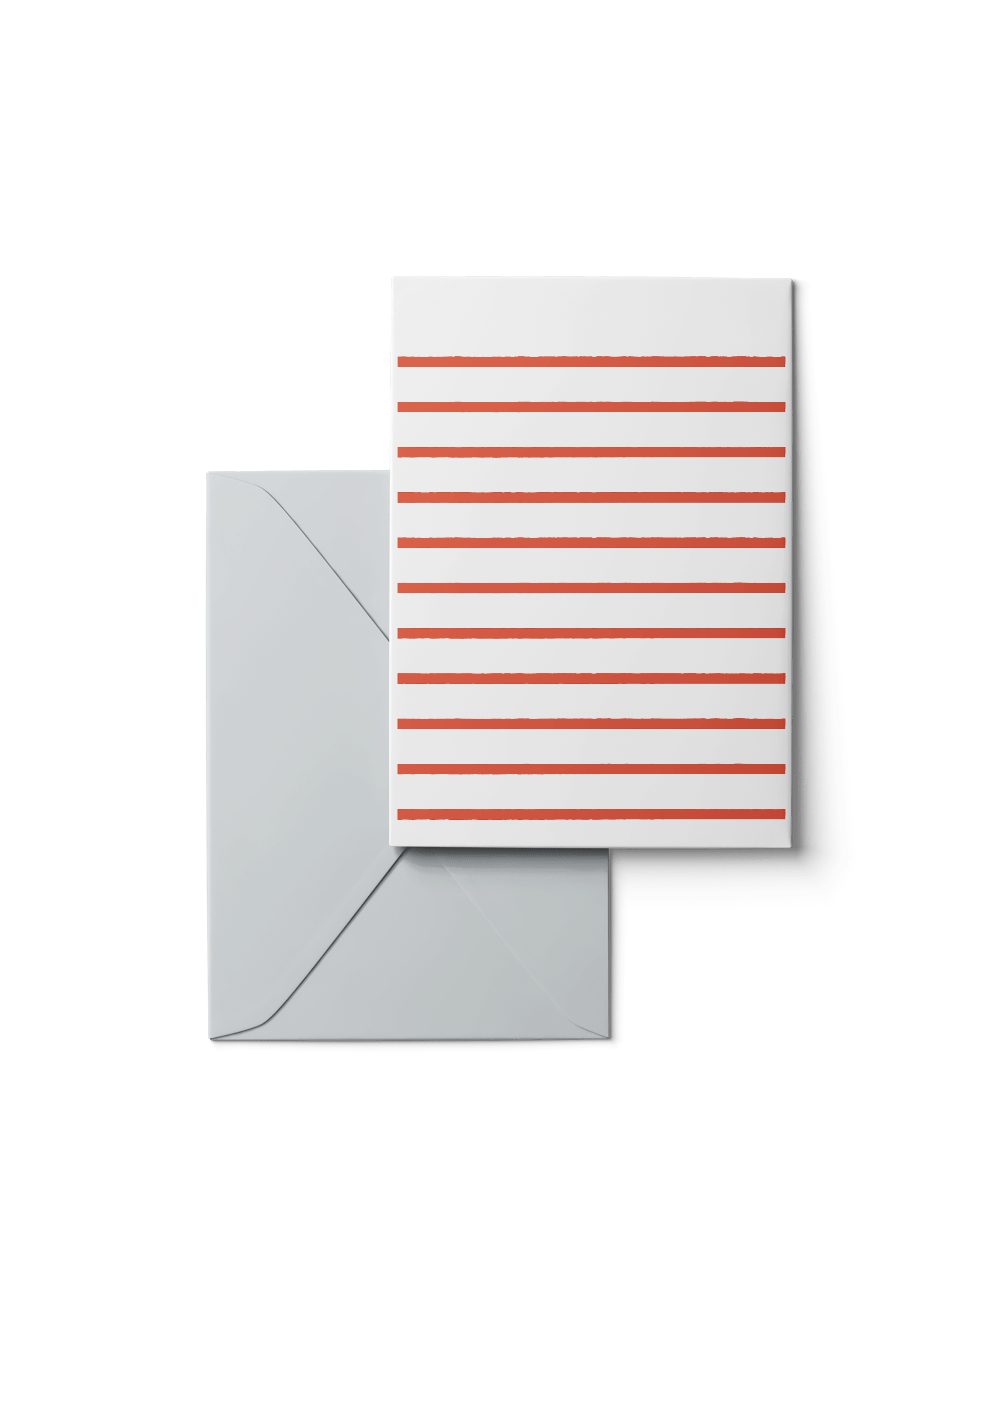 Custom Stripetown, Red, 6 Karten Set by Karten Design Fabrik. Supplier of designer Greeting Cards, Gift Wrap, Christmas Cards & Invitations to leading design stores including Connox, Modulor, Magazin & Manufactum.